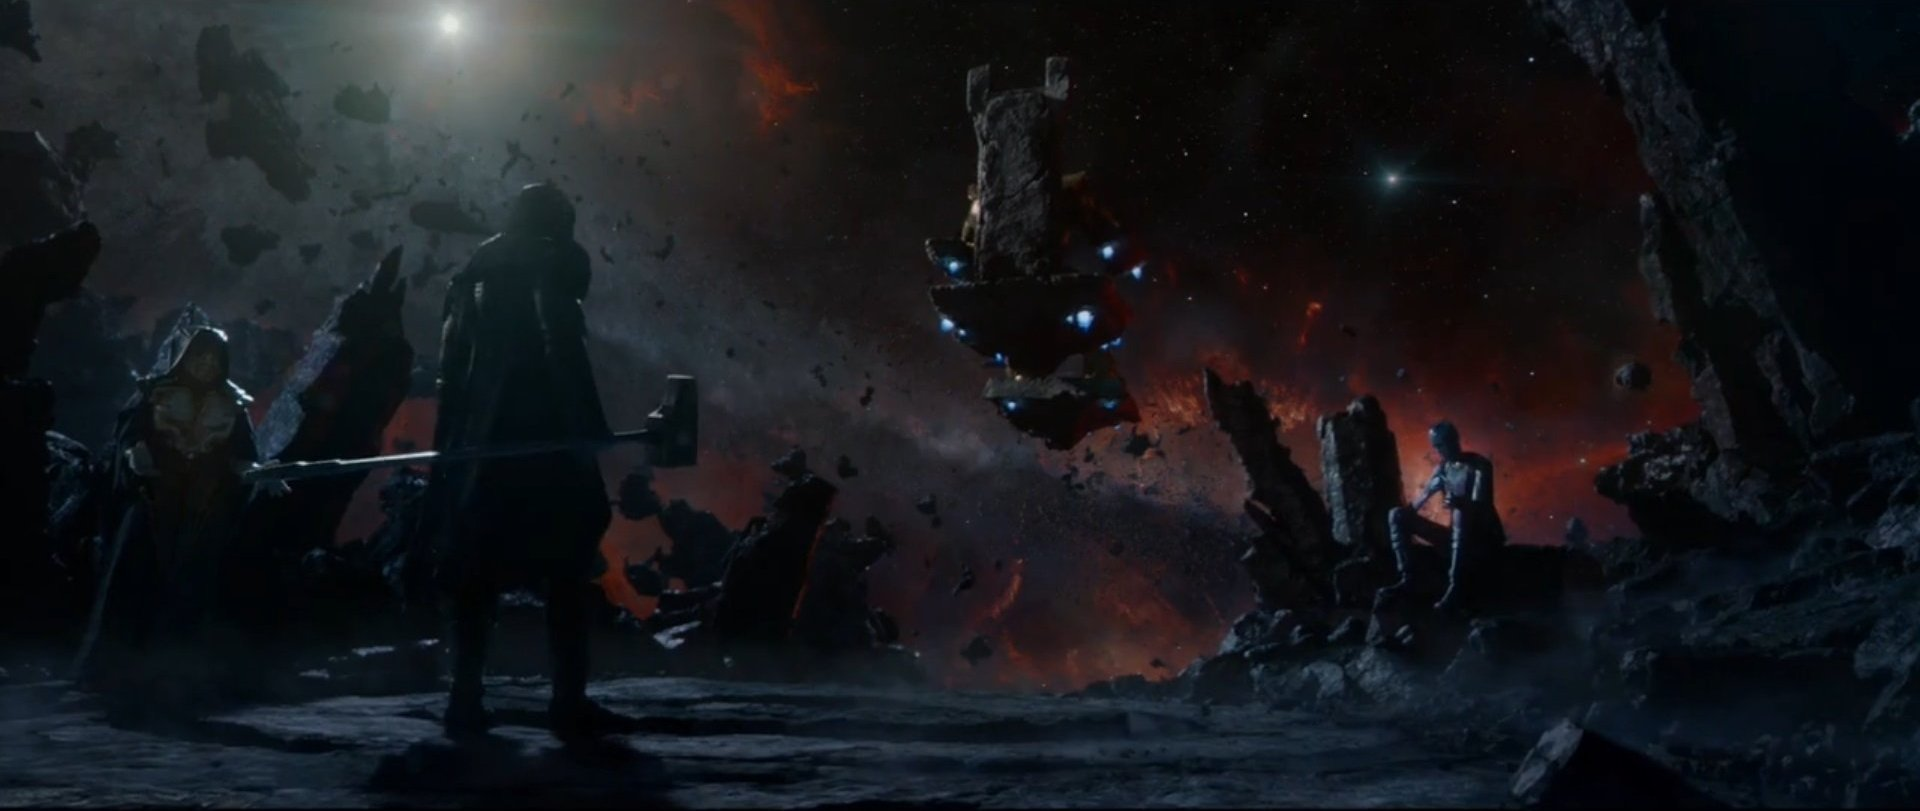 Thanos (Earth-199999), Ronan (Earth-199999), Nebula (Earth-199999), and Other (Chitauri) (Earth-199999) from Guardians of the Galaxy (film) 0001.jpg